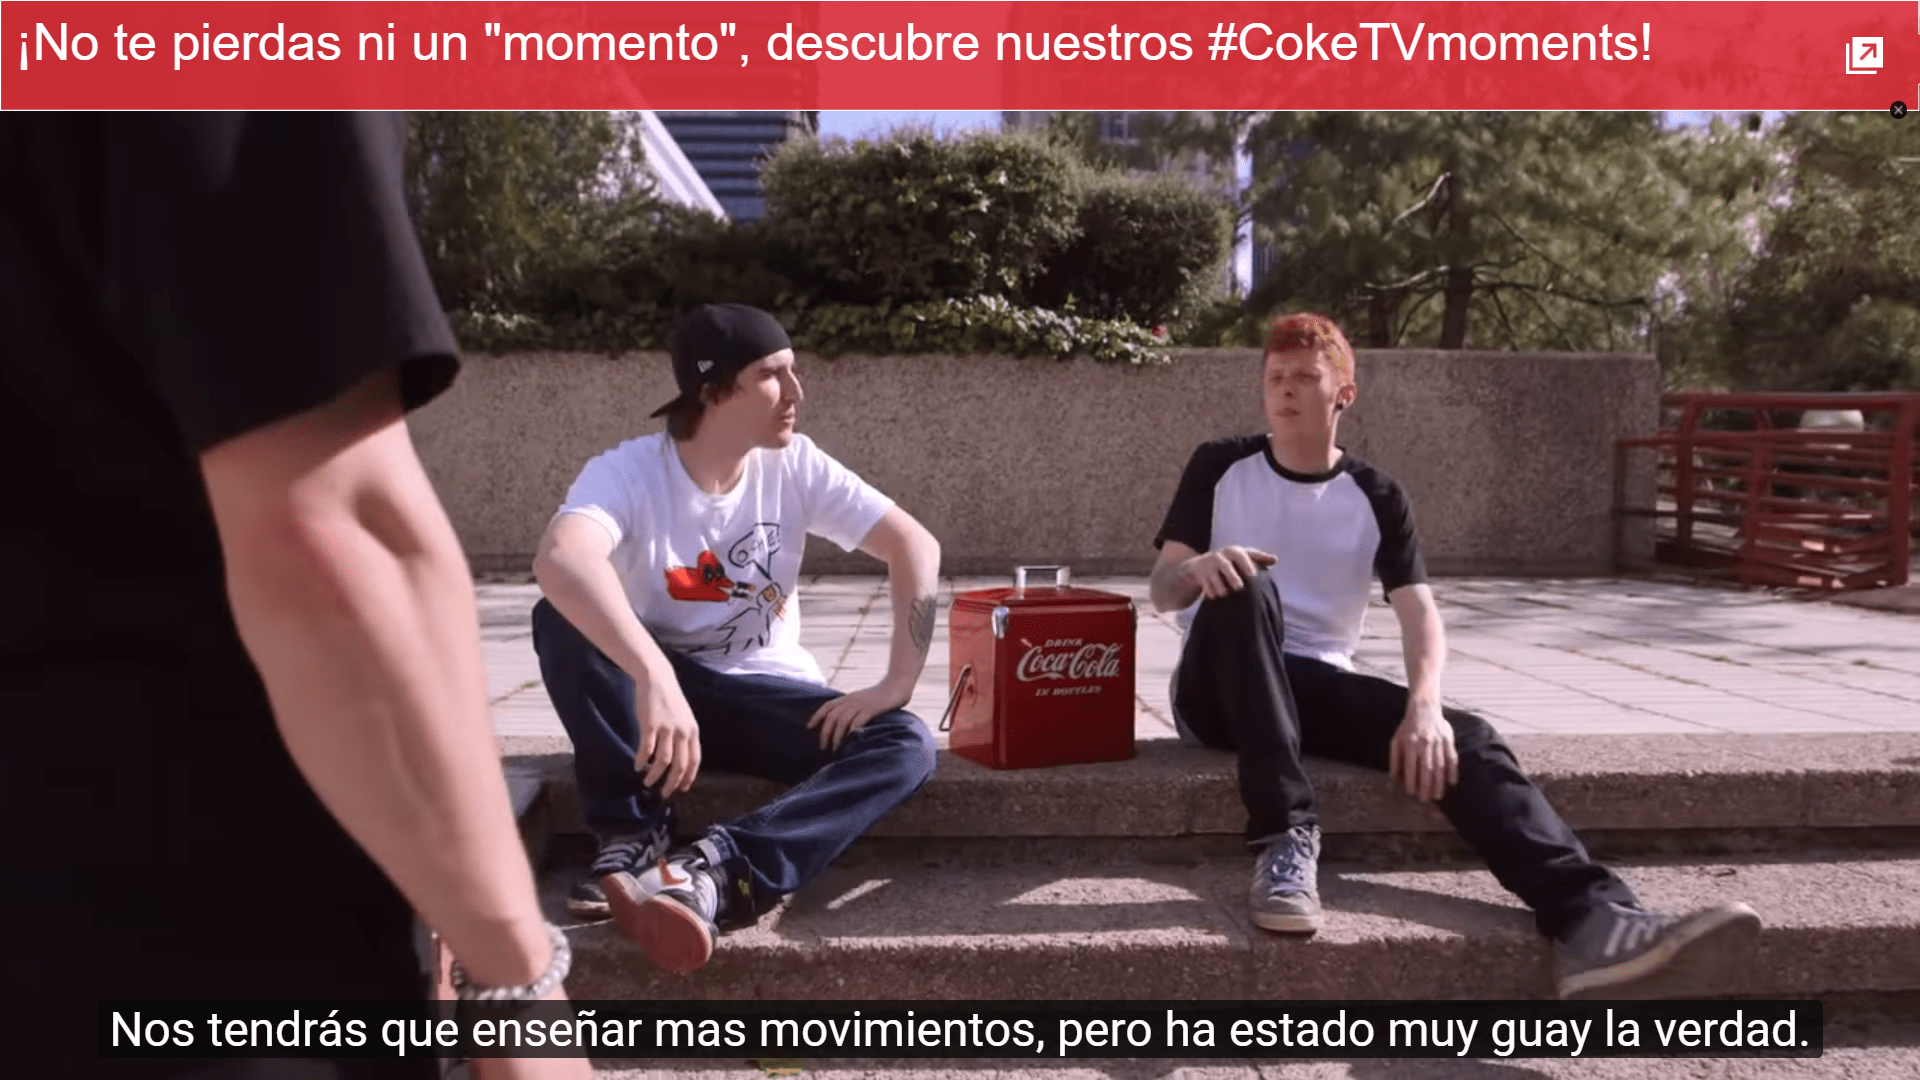 Tarjeta Coke Tv Moments